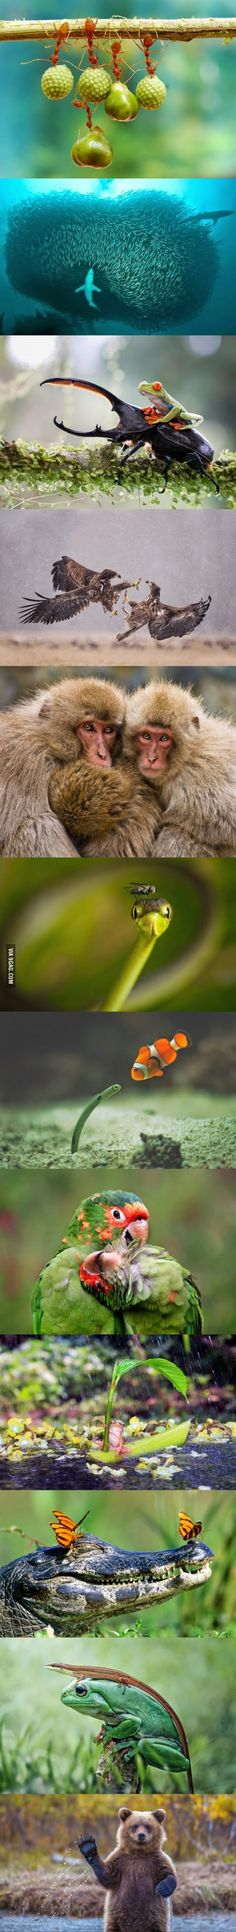 Epic Moments In Nature